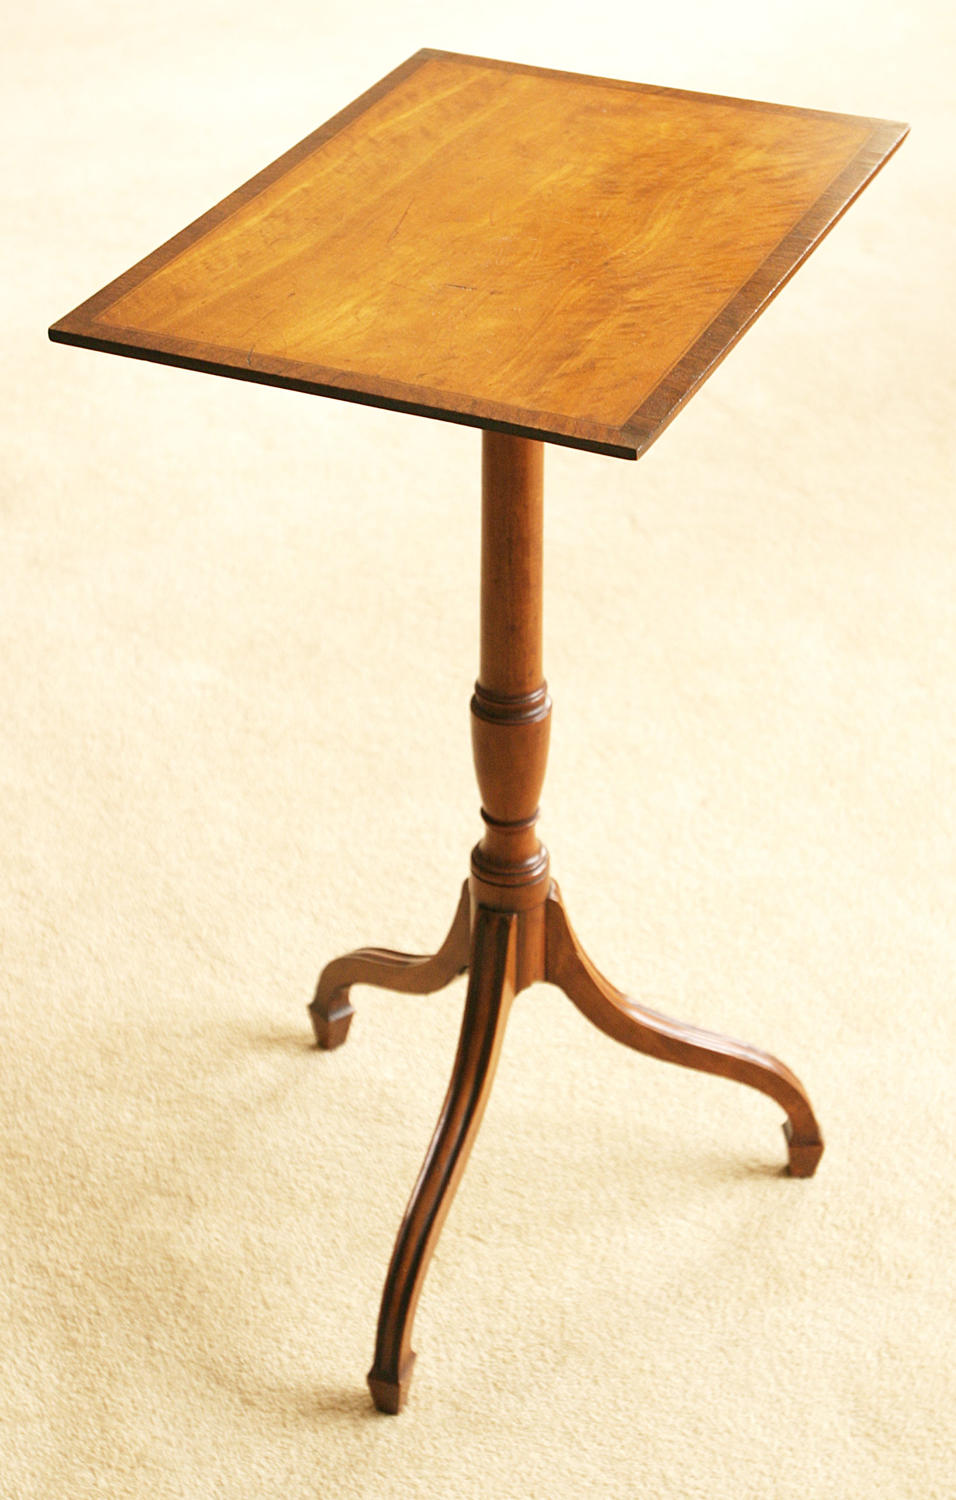 9319 A fine satinwood tripod table